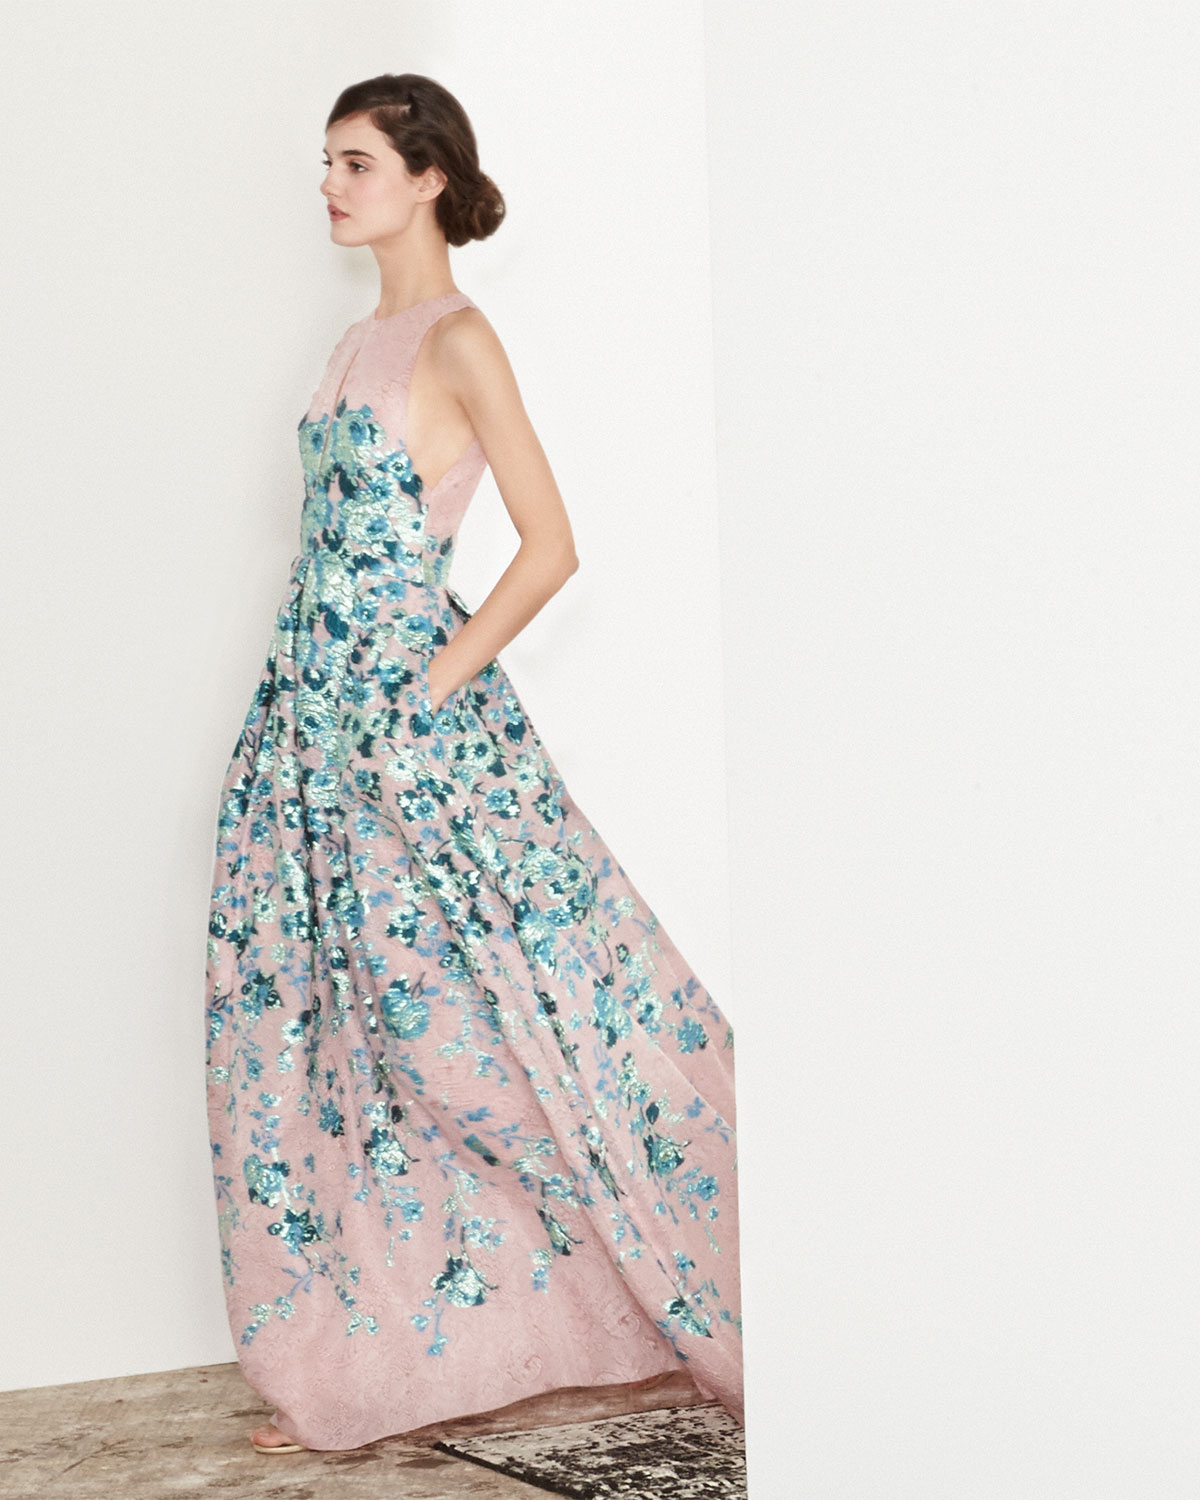 Lyst - Lela Rose Keyhole Cutout-Back Floral Jacquard Gown in Blue